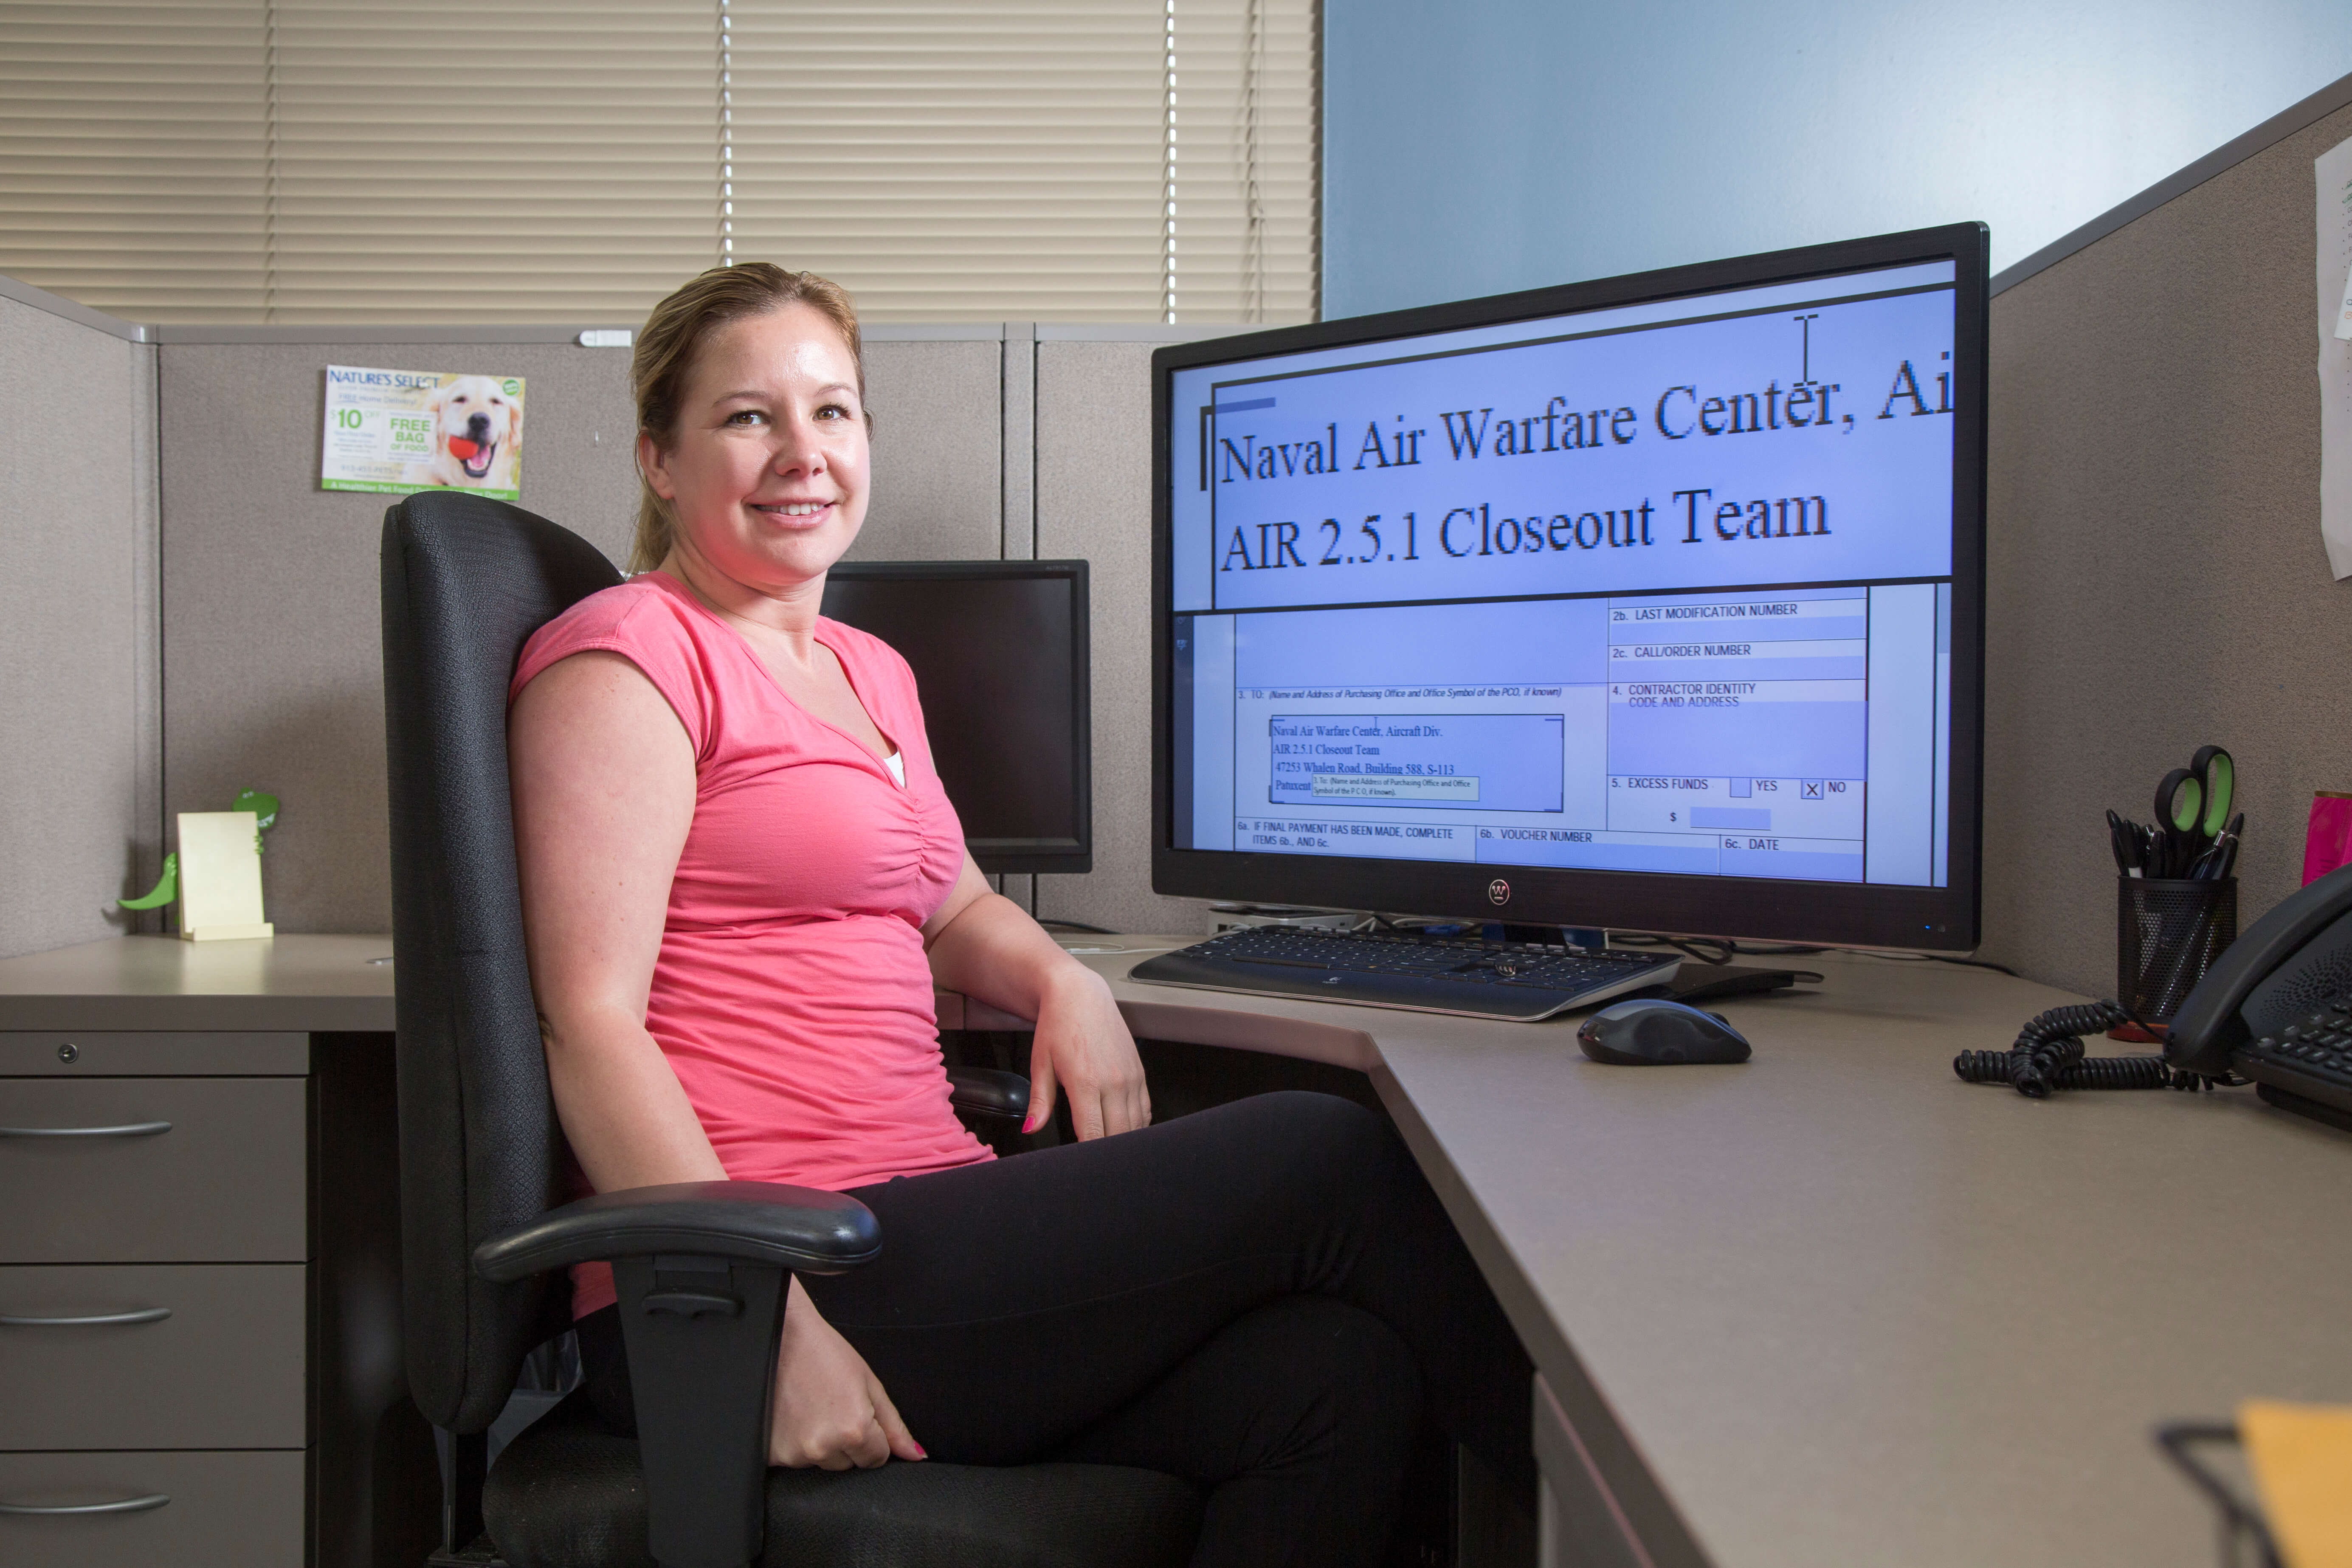 Happy female employee sitting at a computer performing CMS work